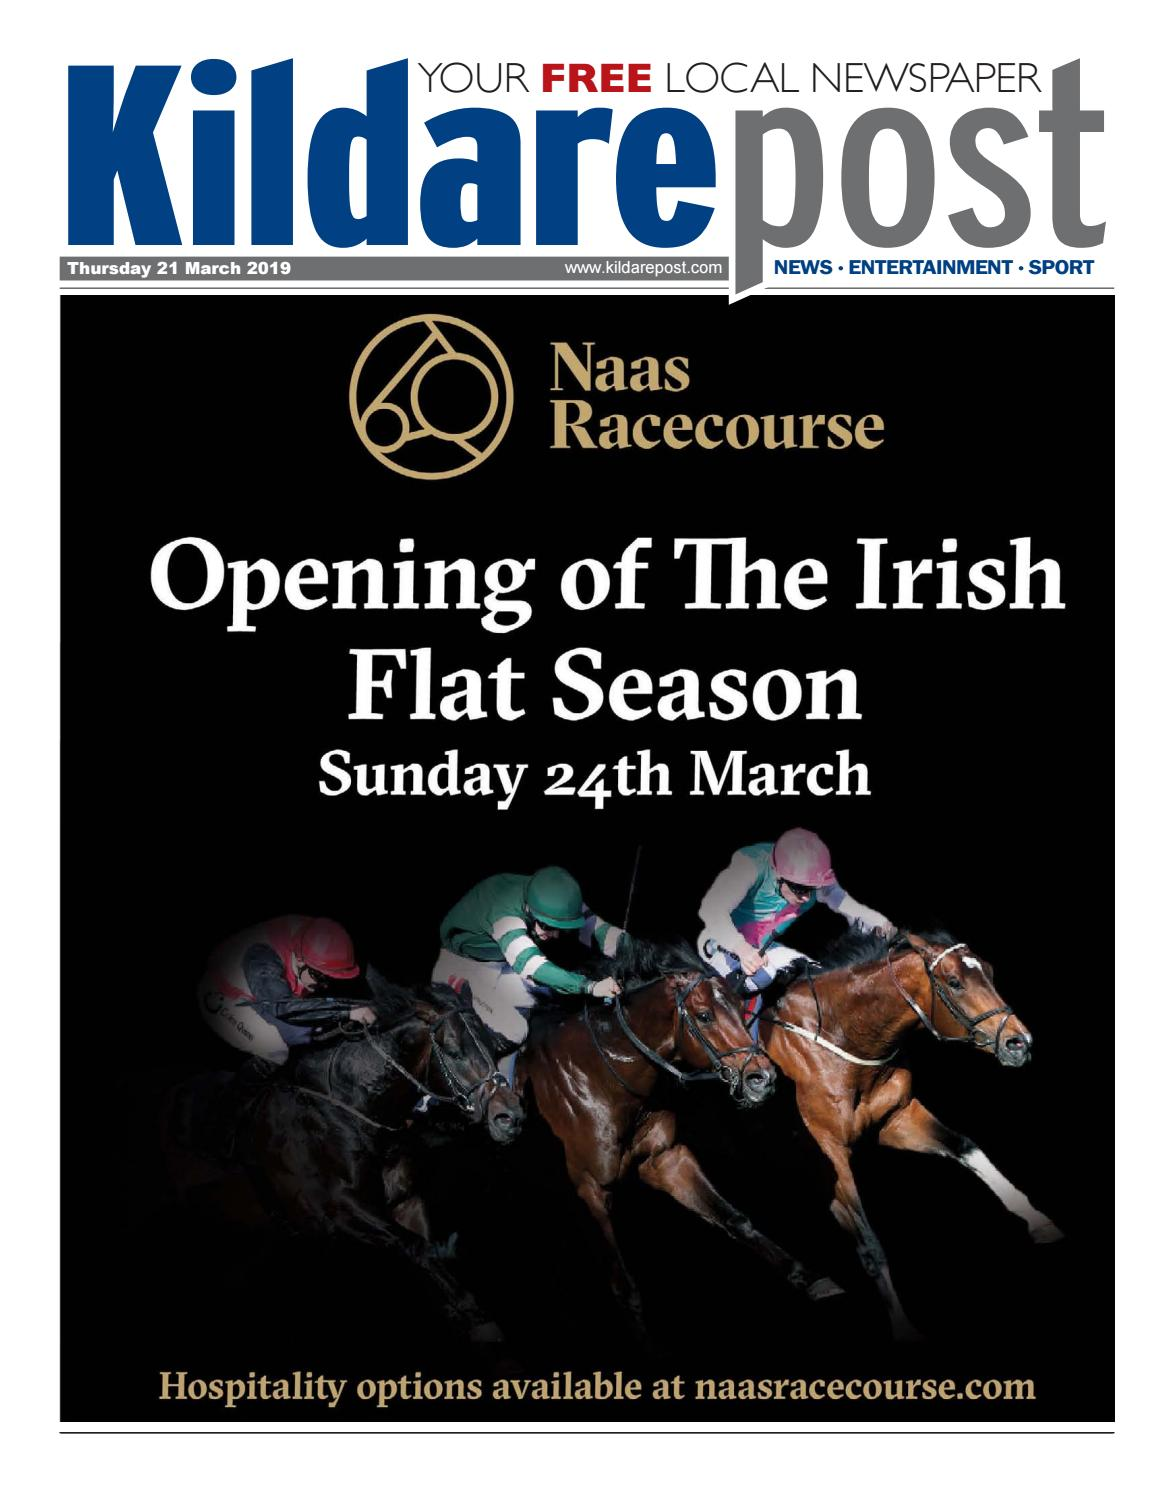 Thursday 21 March 2019 by River Media Newspapers - issuu on